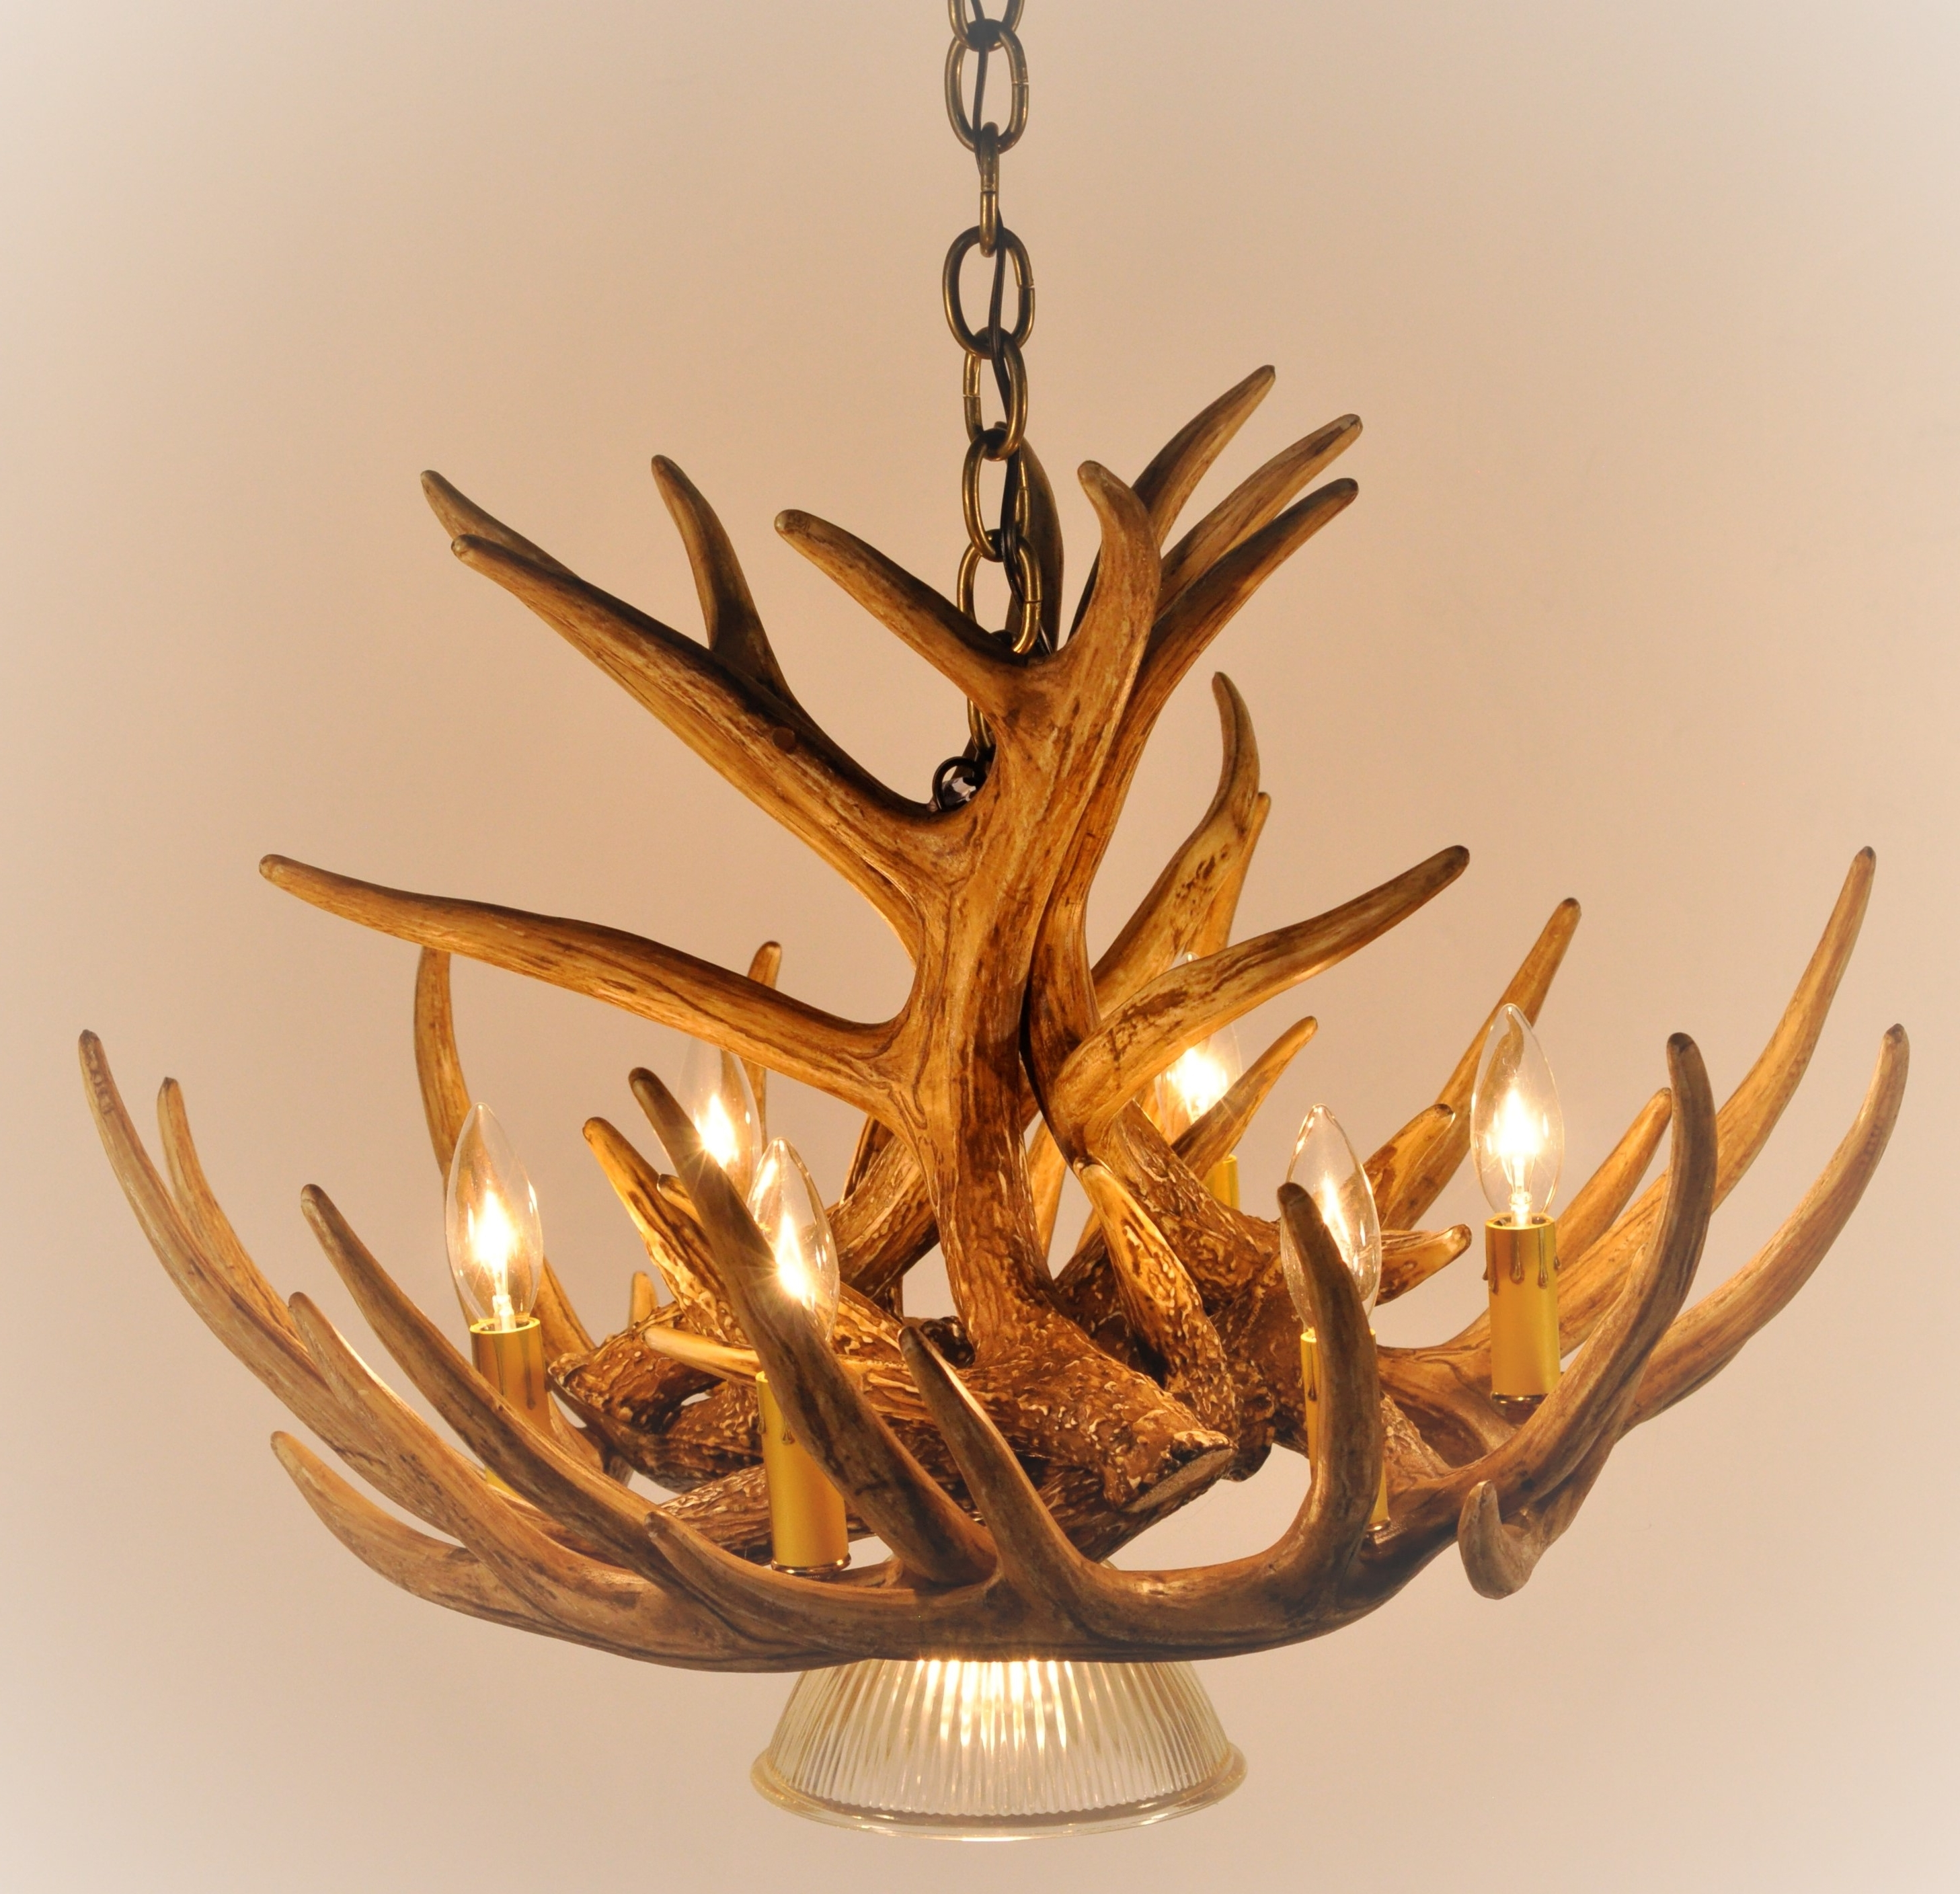 Most Recent Whitetail Deer 9 Antler Cascade Chandelier With 1 Downlight* – Cast Inside Antler Chandeliers (View 12 of 20)